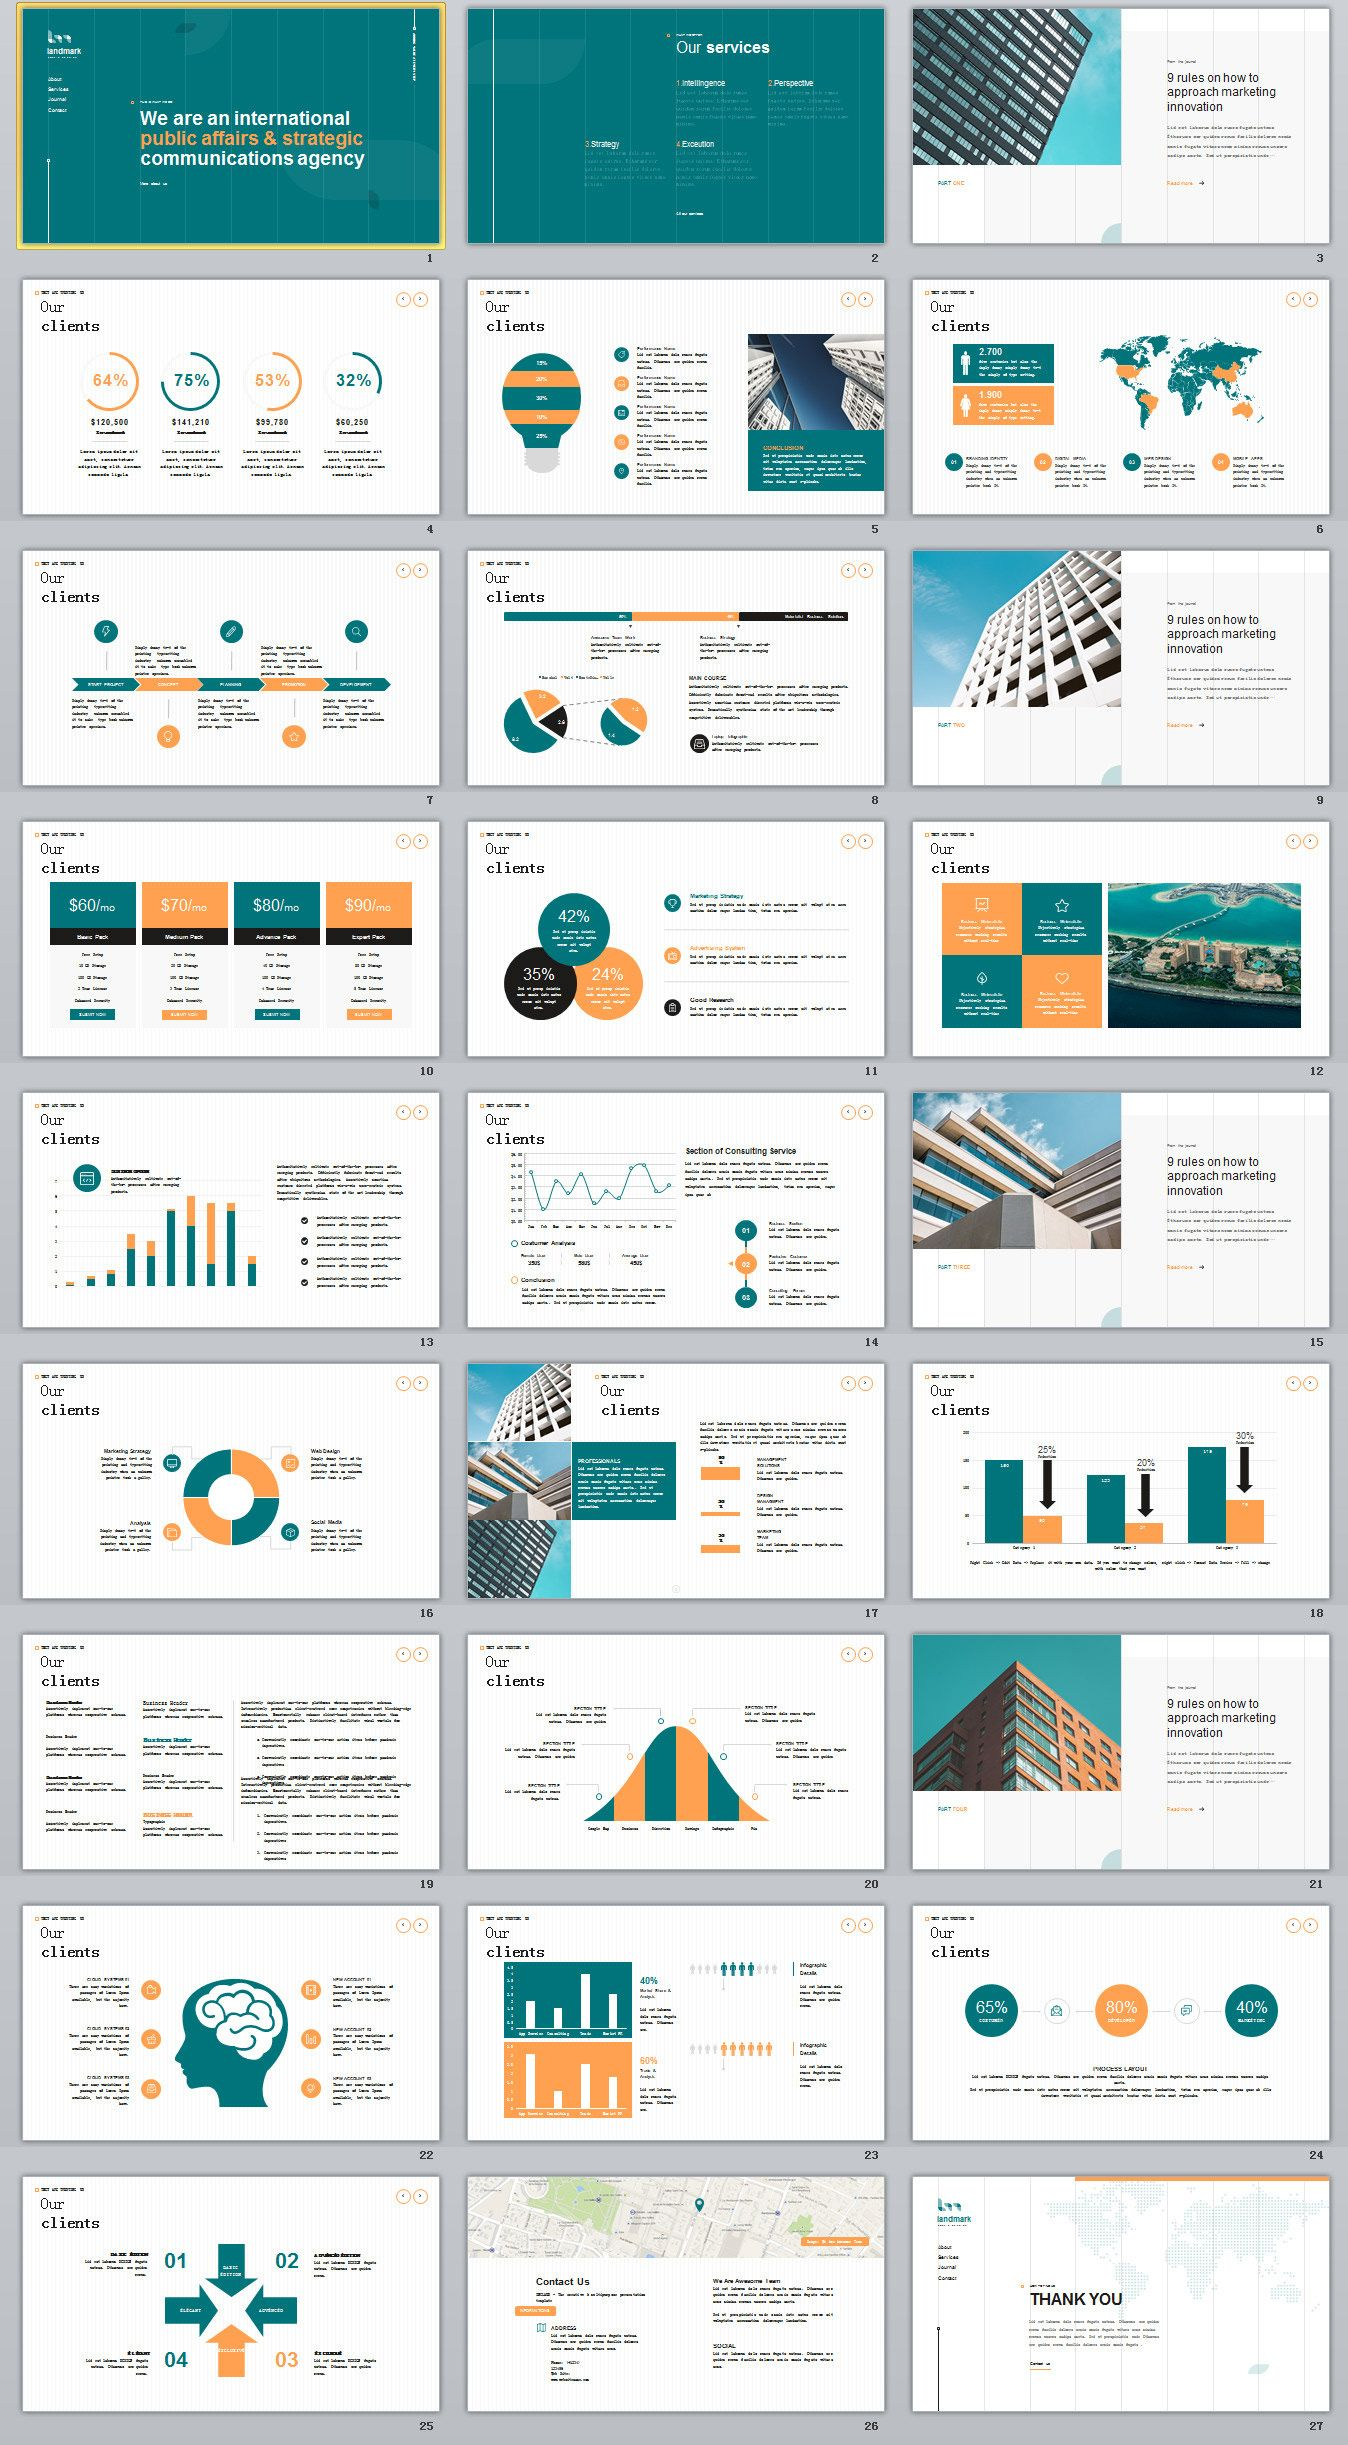 27 company cool introduction chart powerpoint template on behance 27 company cool introduction chart powerpoint template on behance powerpoint templates presentation toneelgroepblik Image collections